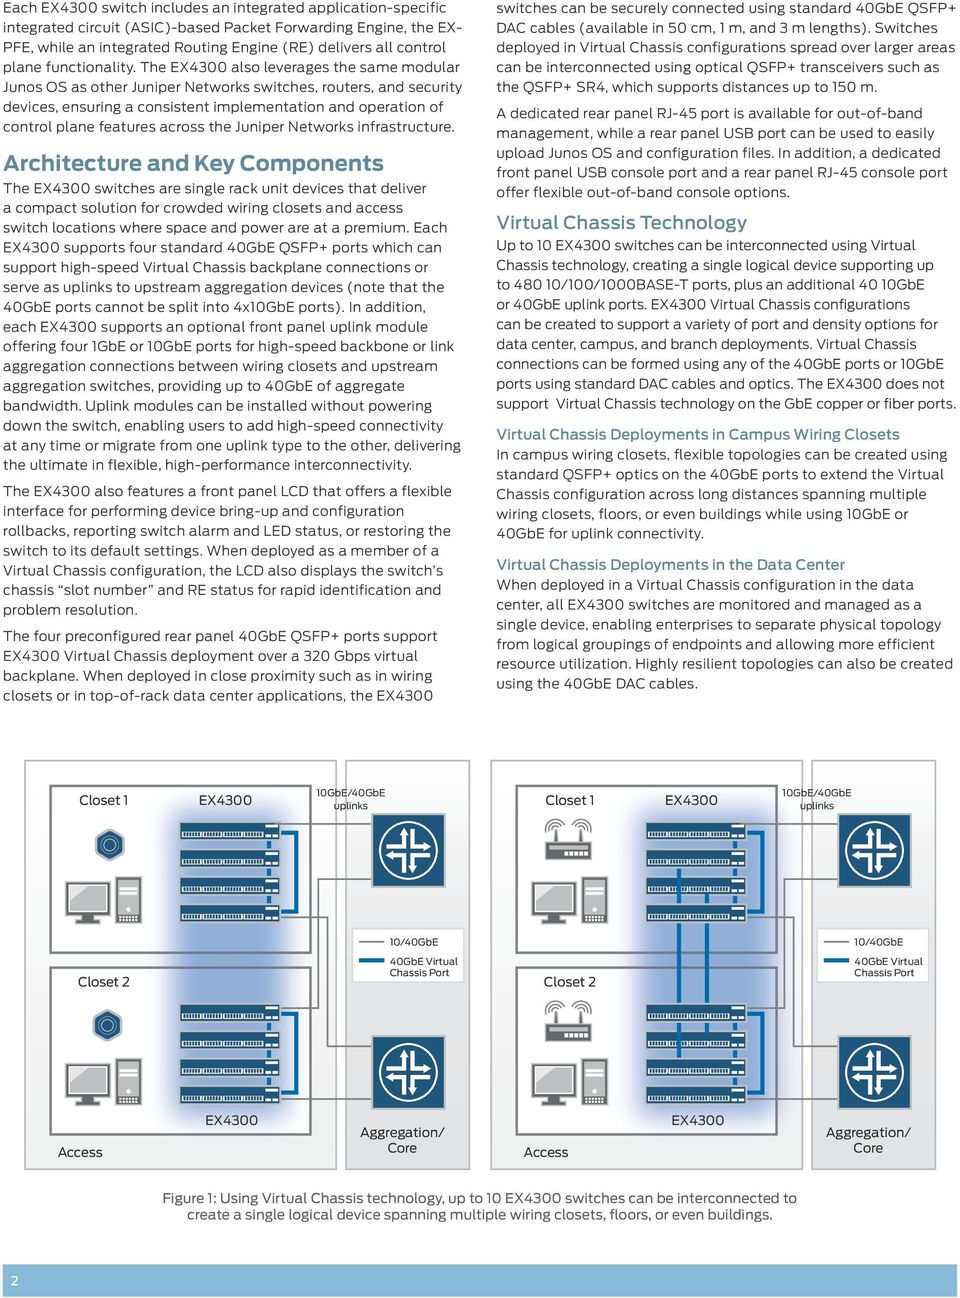 The also leverages the same modular Junos OS as other Juniper Networks switches, routers, and security devices, ensuring a consistent implementation and operation of control plane features across the